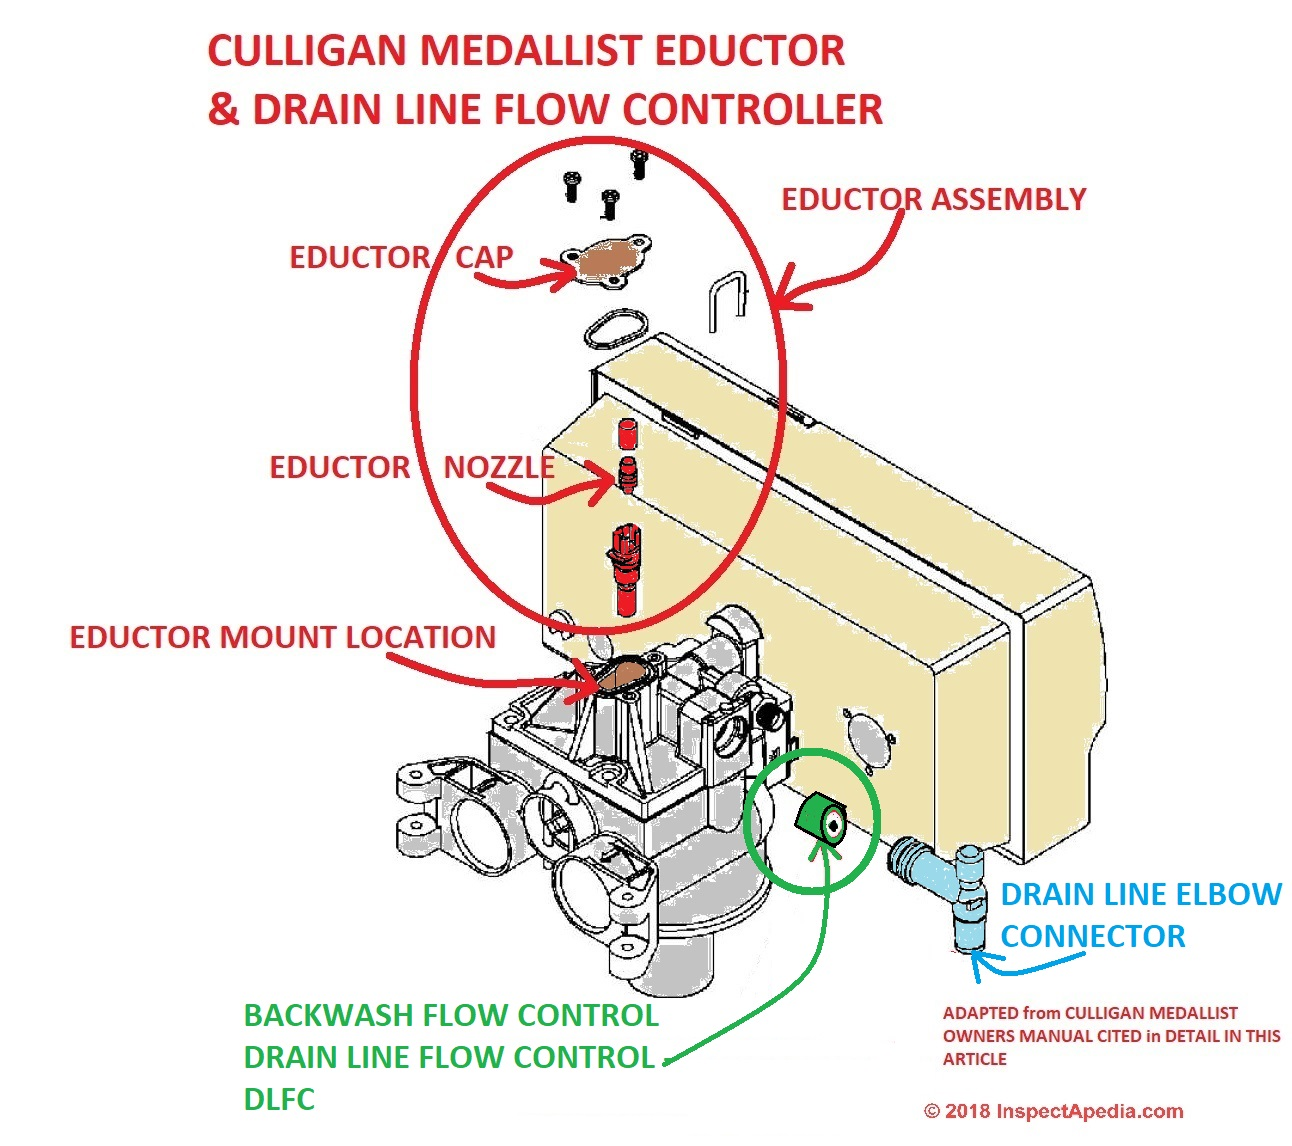 hight resolution of dlfc drain line flow control on a culligan medallist water softener c inspectapedia